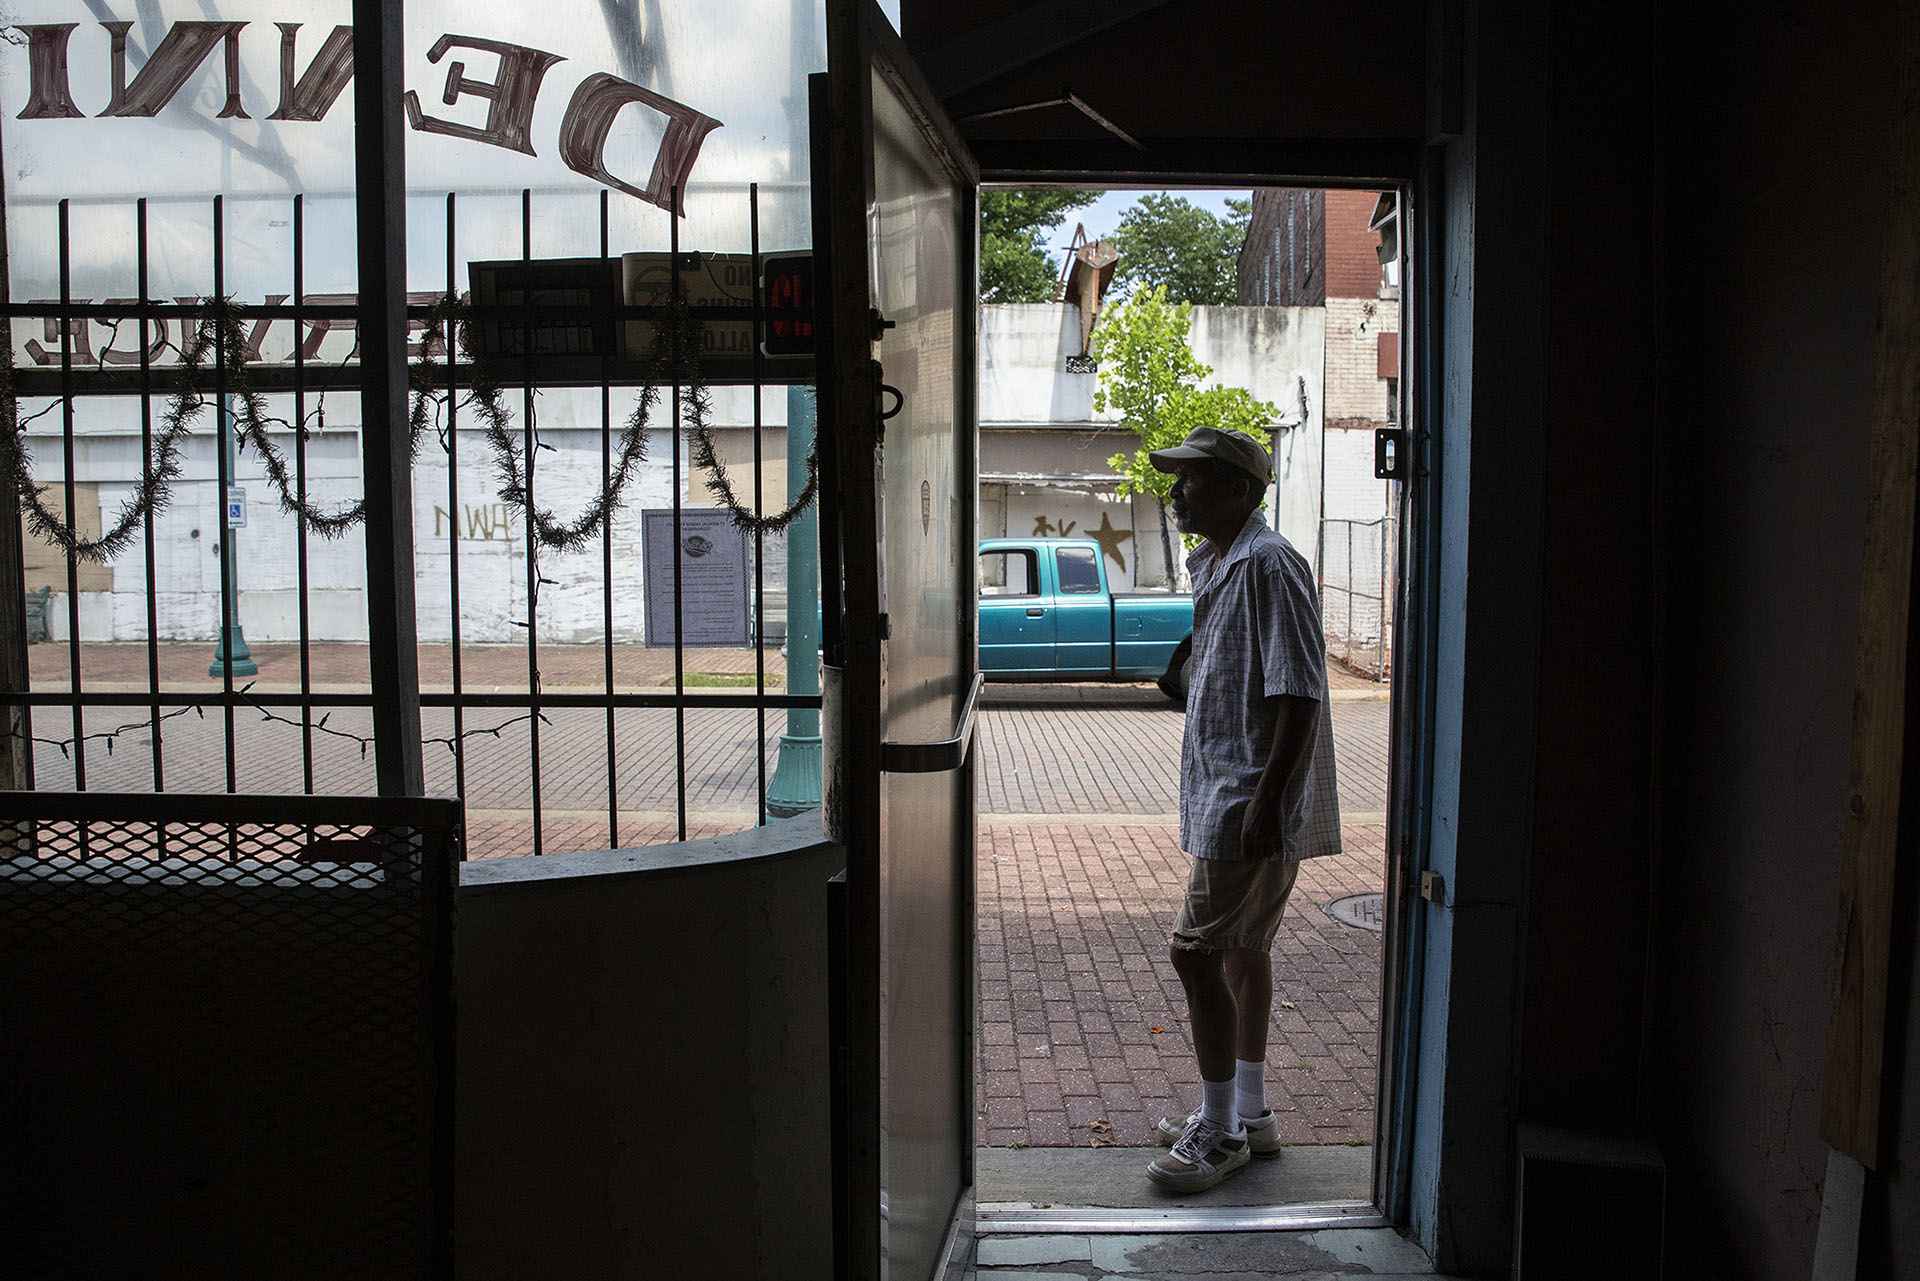 "Tony ""Dr. Shoemaker"" Brothers looks at Farish Street while at his family's business, Dennis Brothers Shoe Repair Service in the 300 block of Farish Street in Jackson Wednesday, June 27, 2018. (Photo by Eric J. Shelton/GroundTruth)"